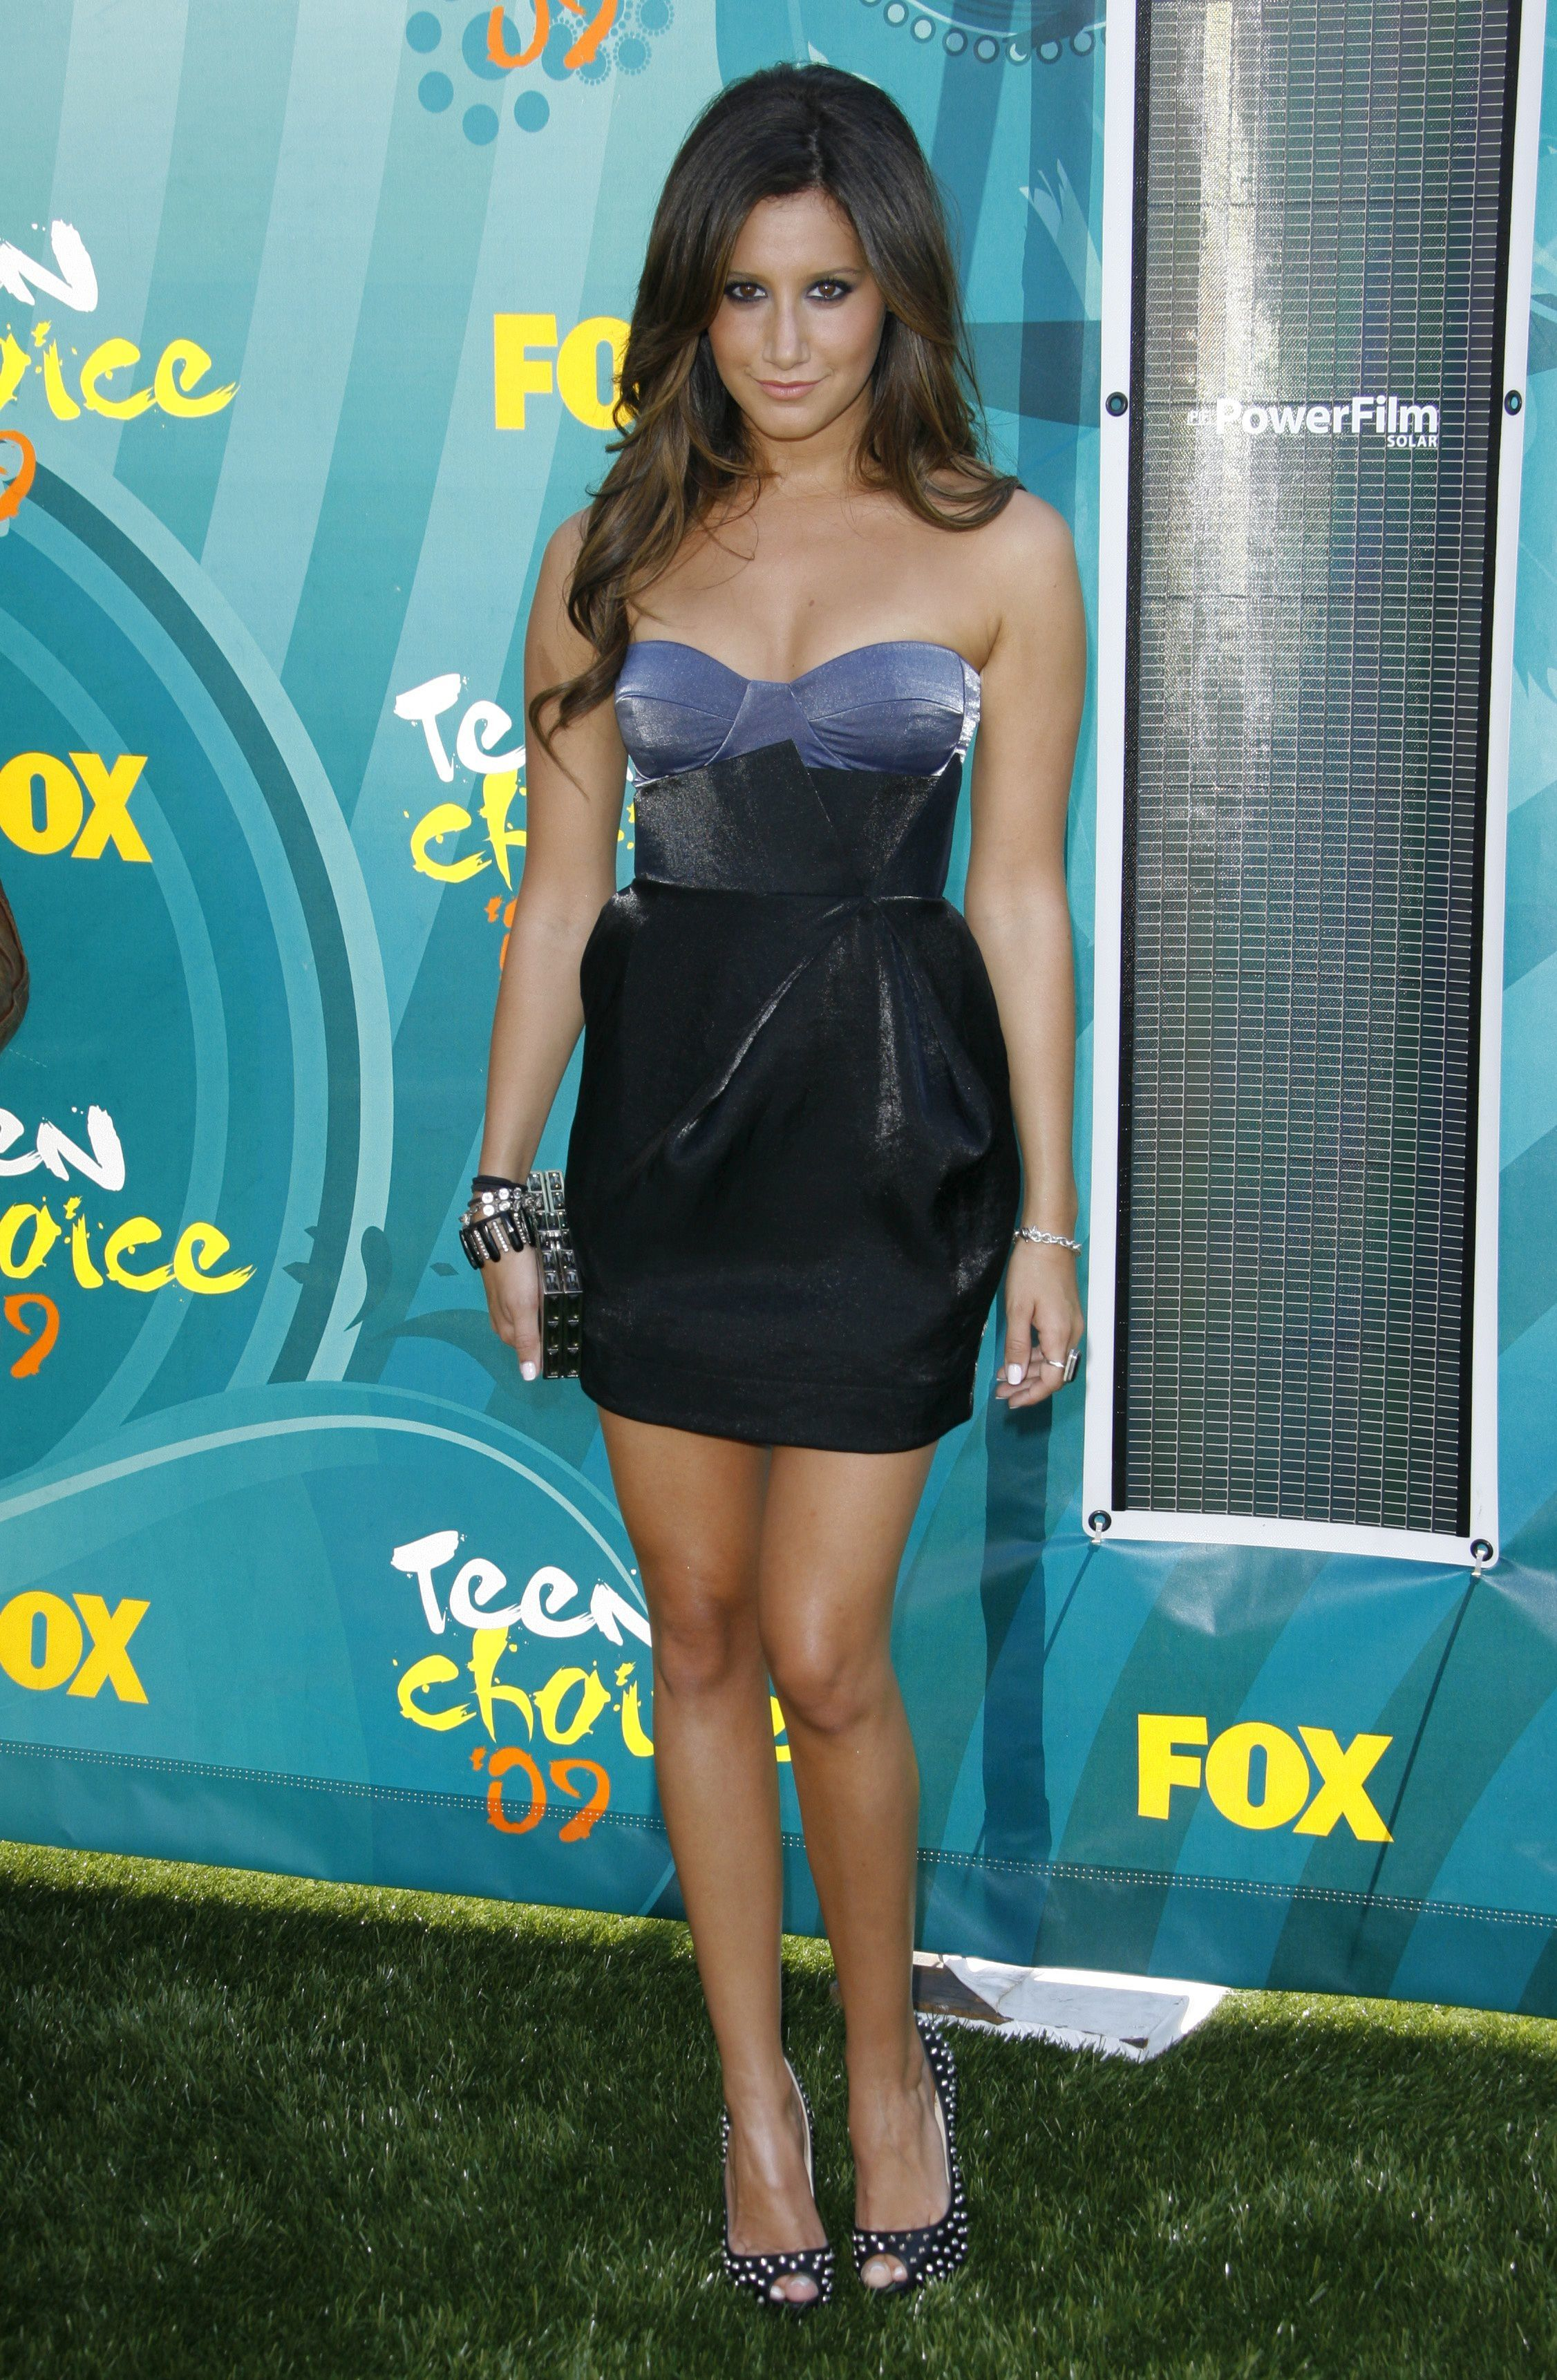 Ashley Tisdale at the 2009 Teen Choice Awards.